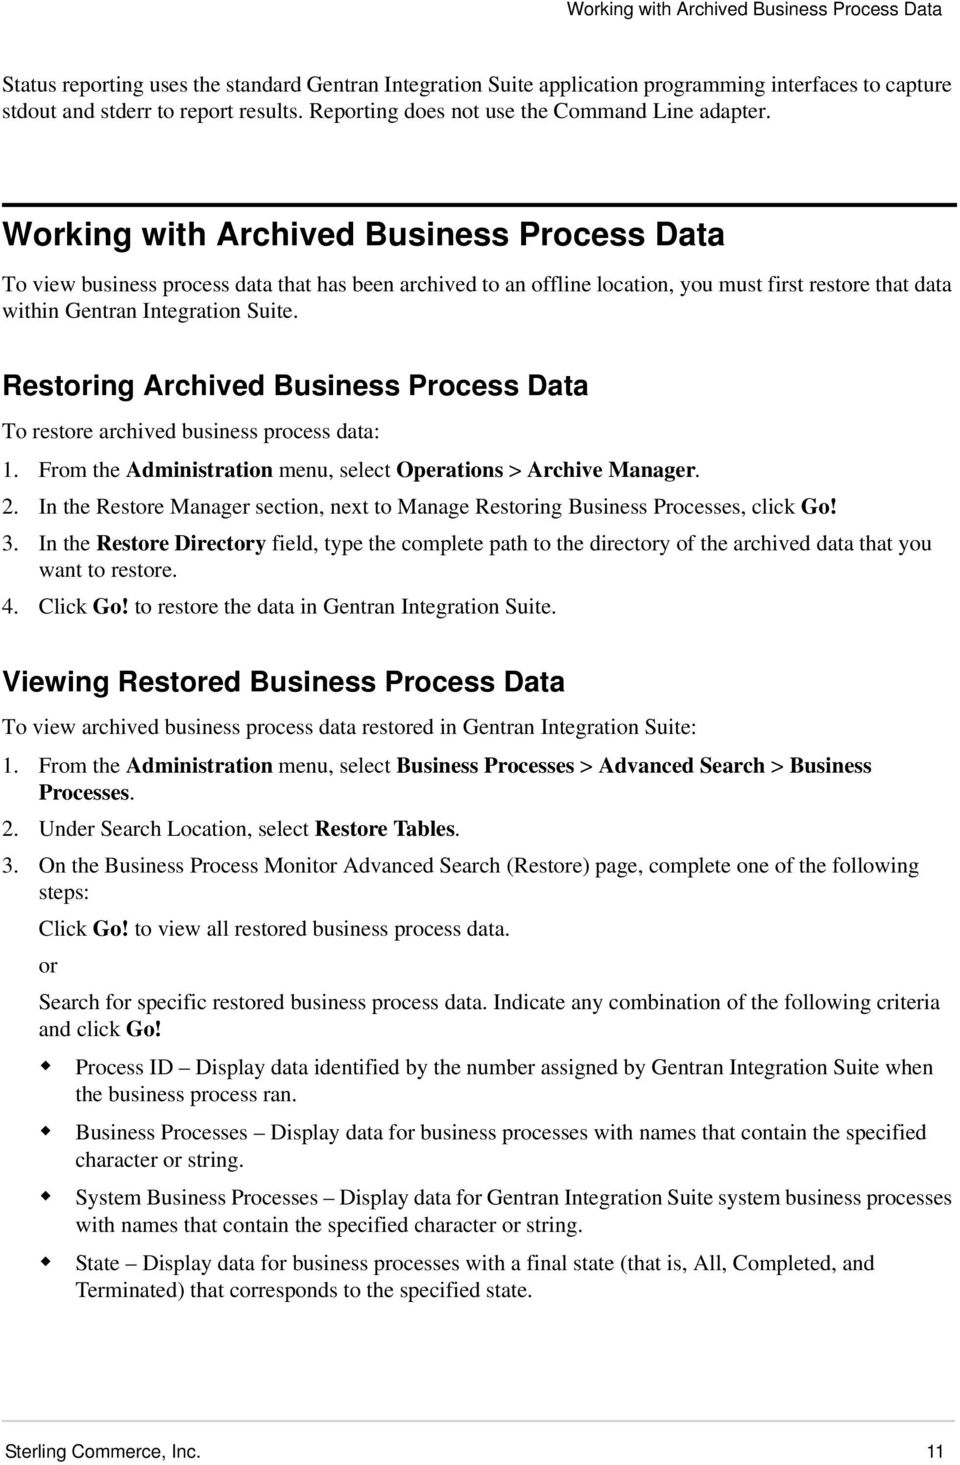 Working with Archived Business Process Data To view business process data that has been archived to an offline location, you must first restore that data within Gentran Integration Suite.